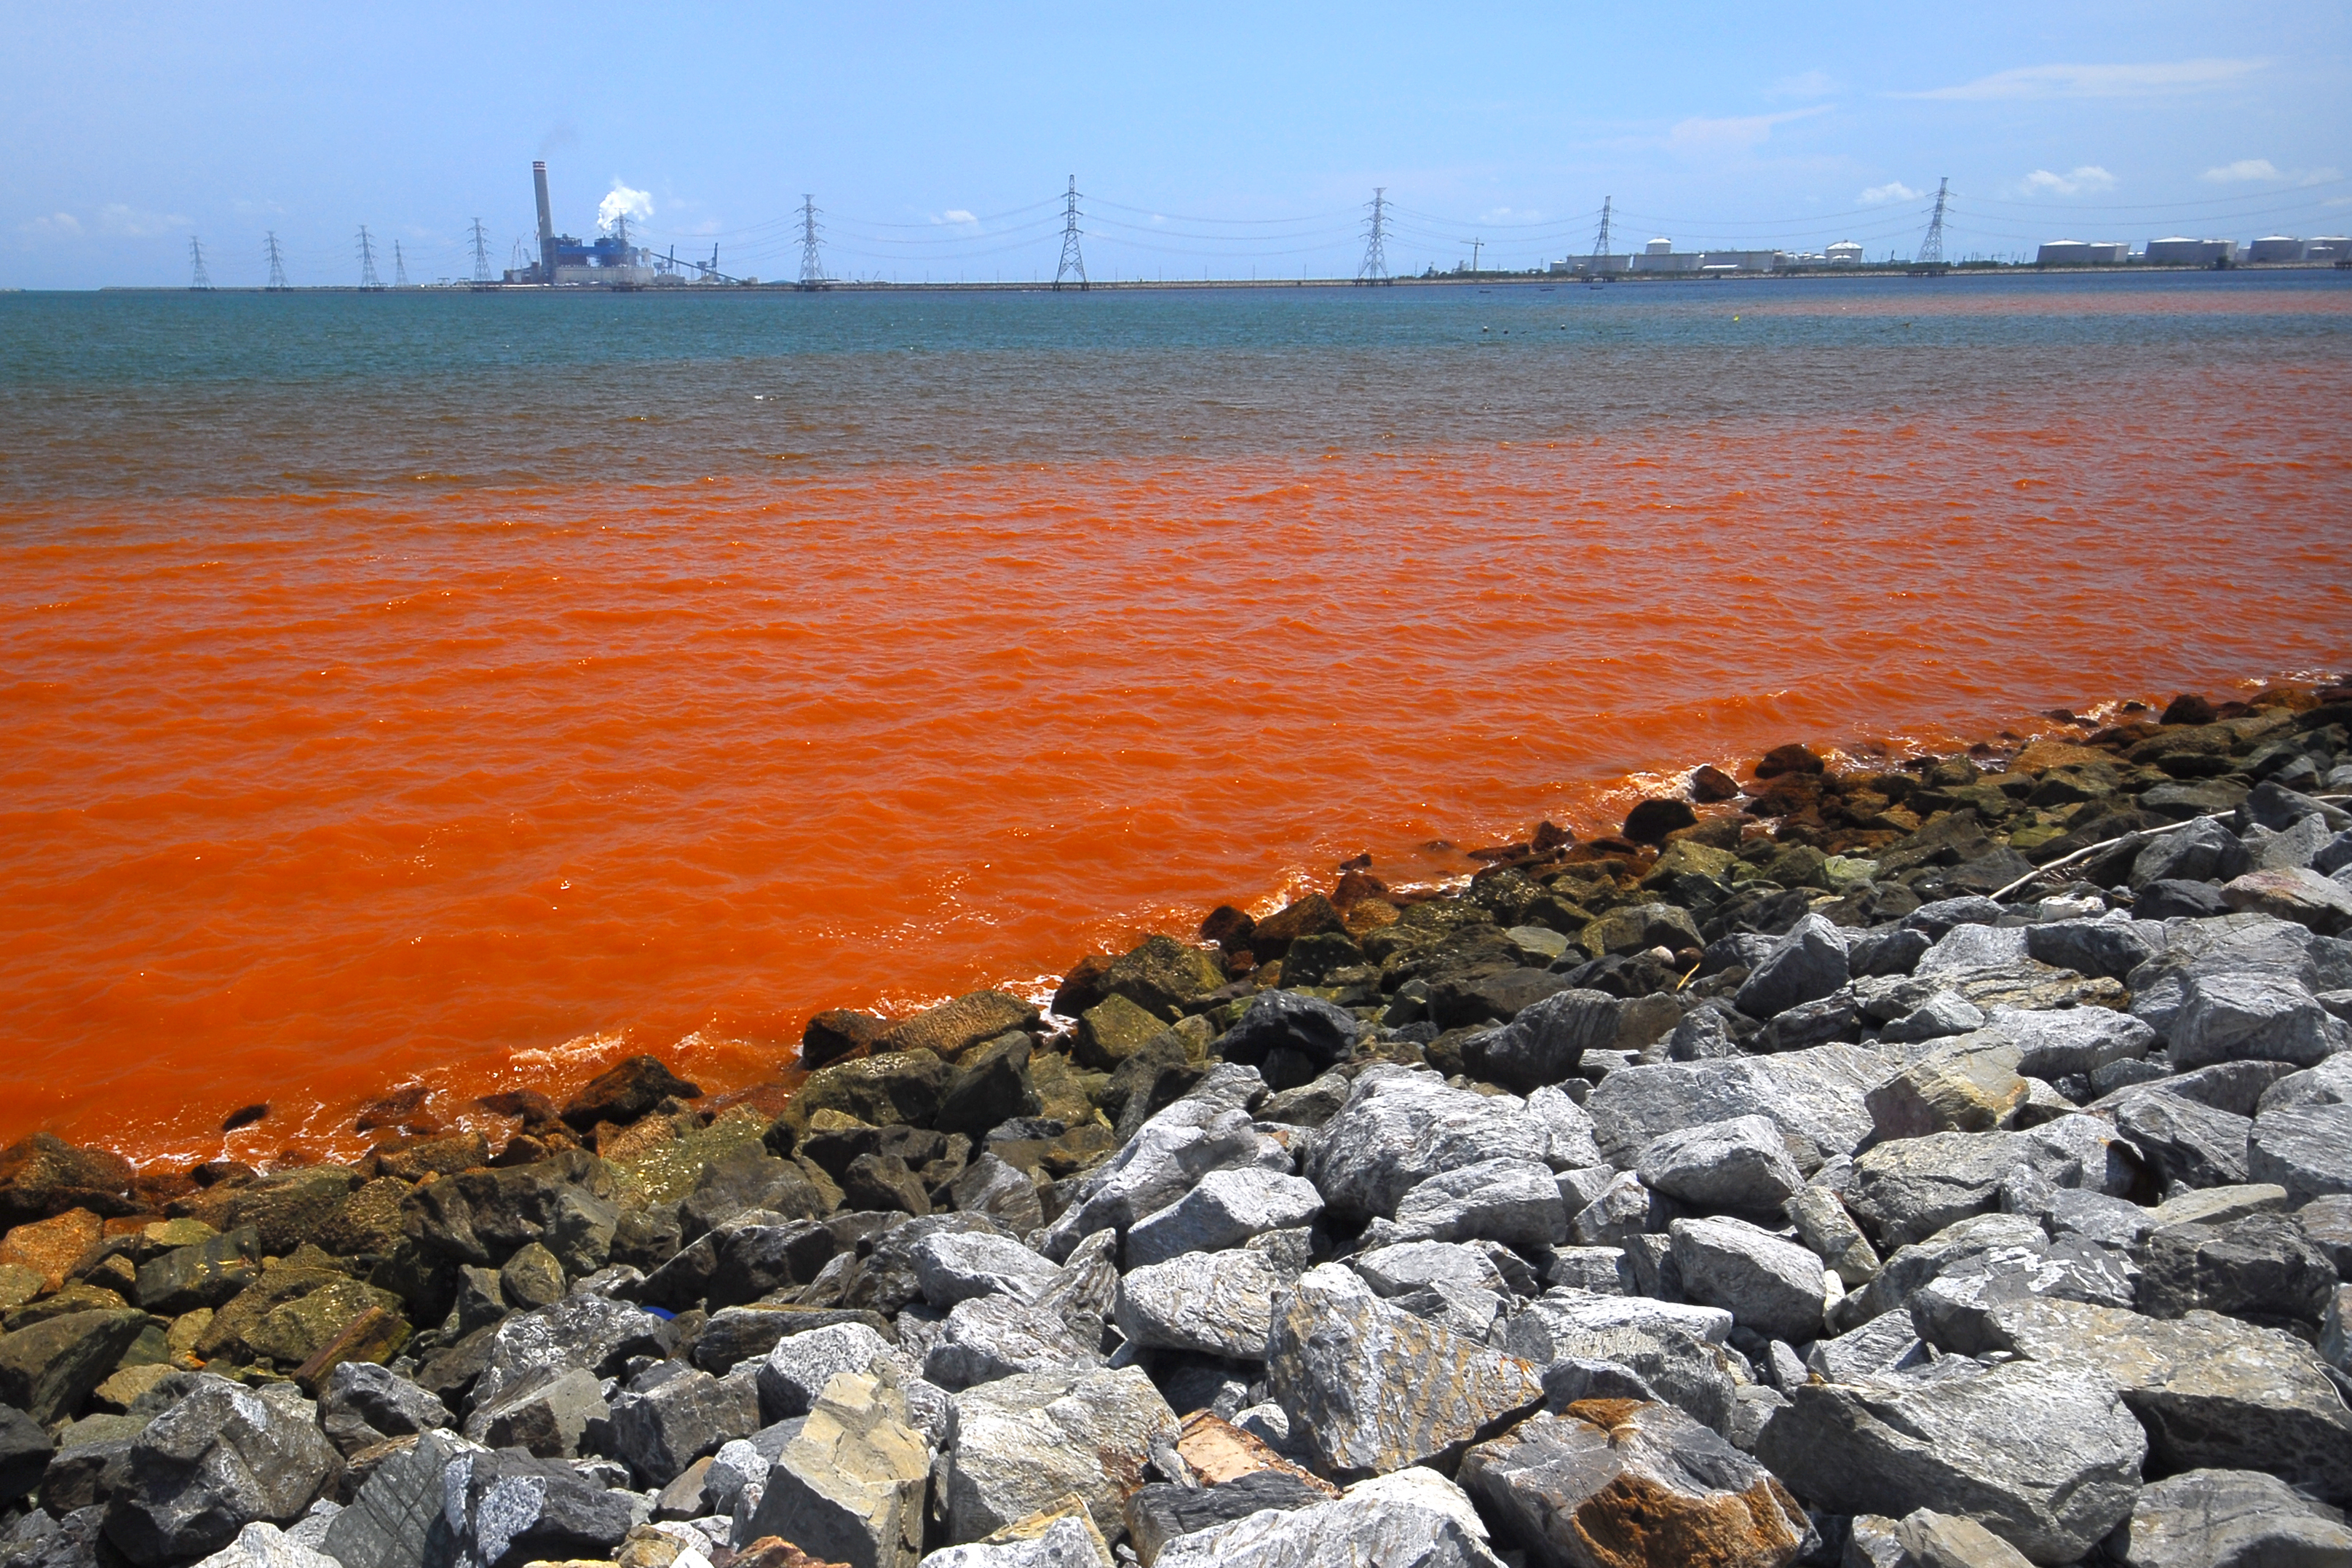 pollution of great lakes and seas